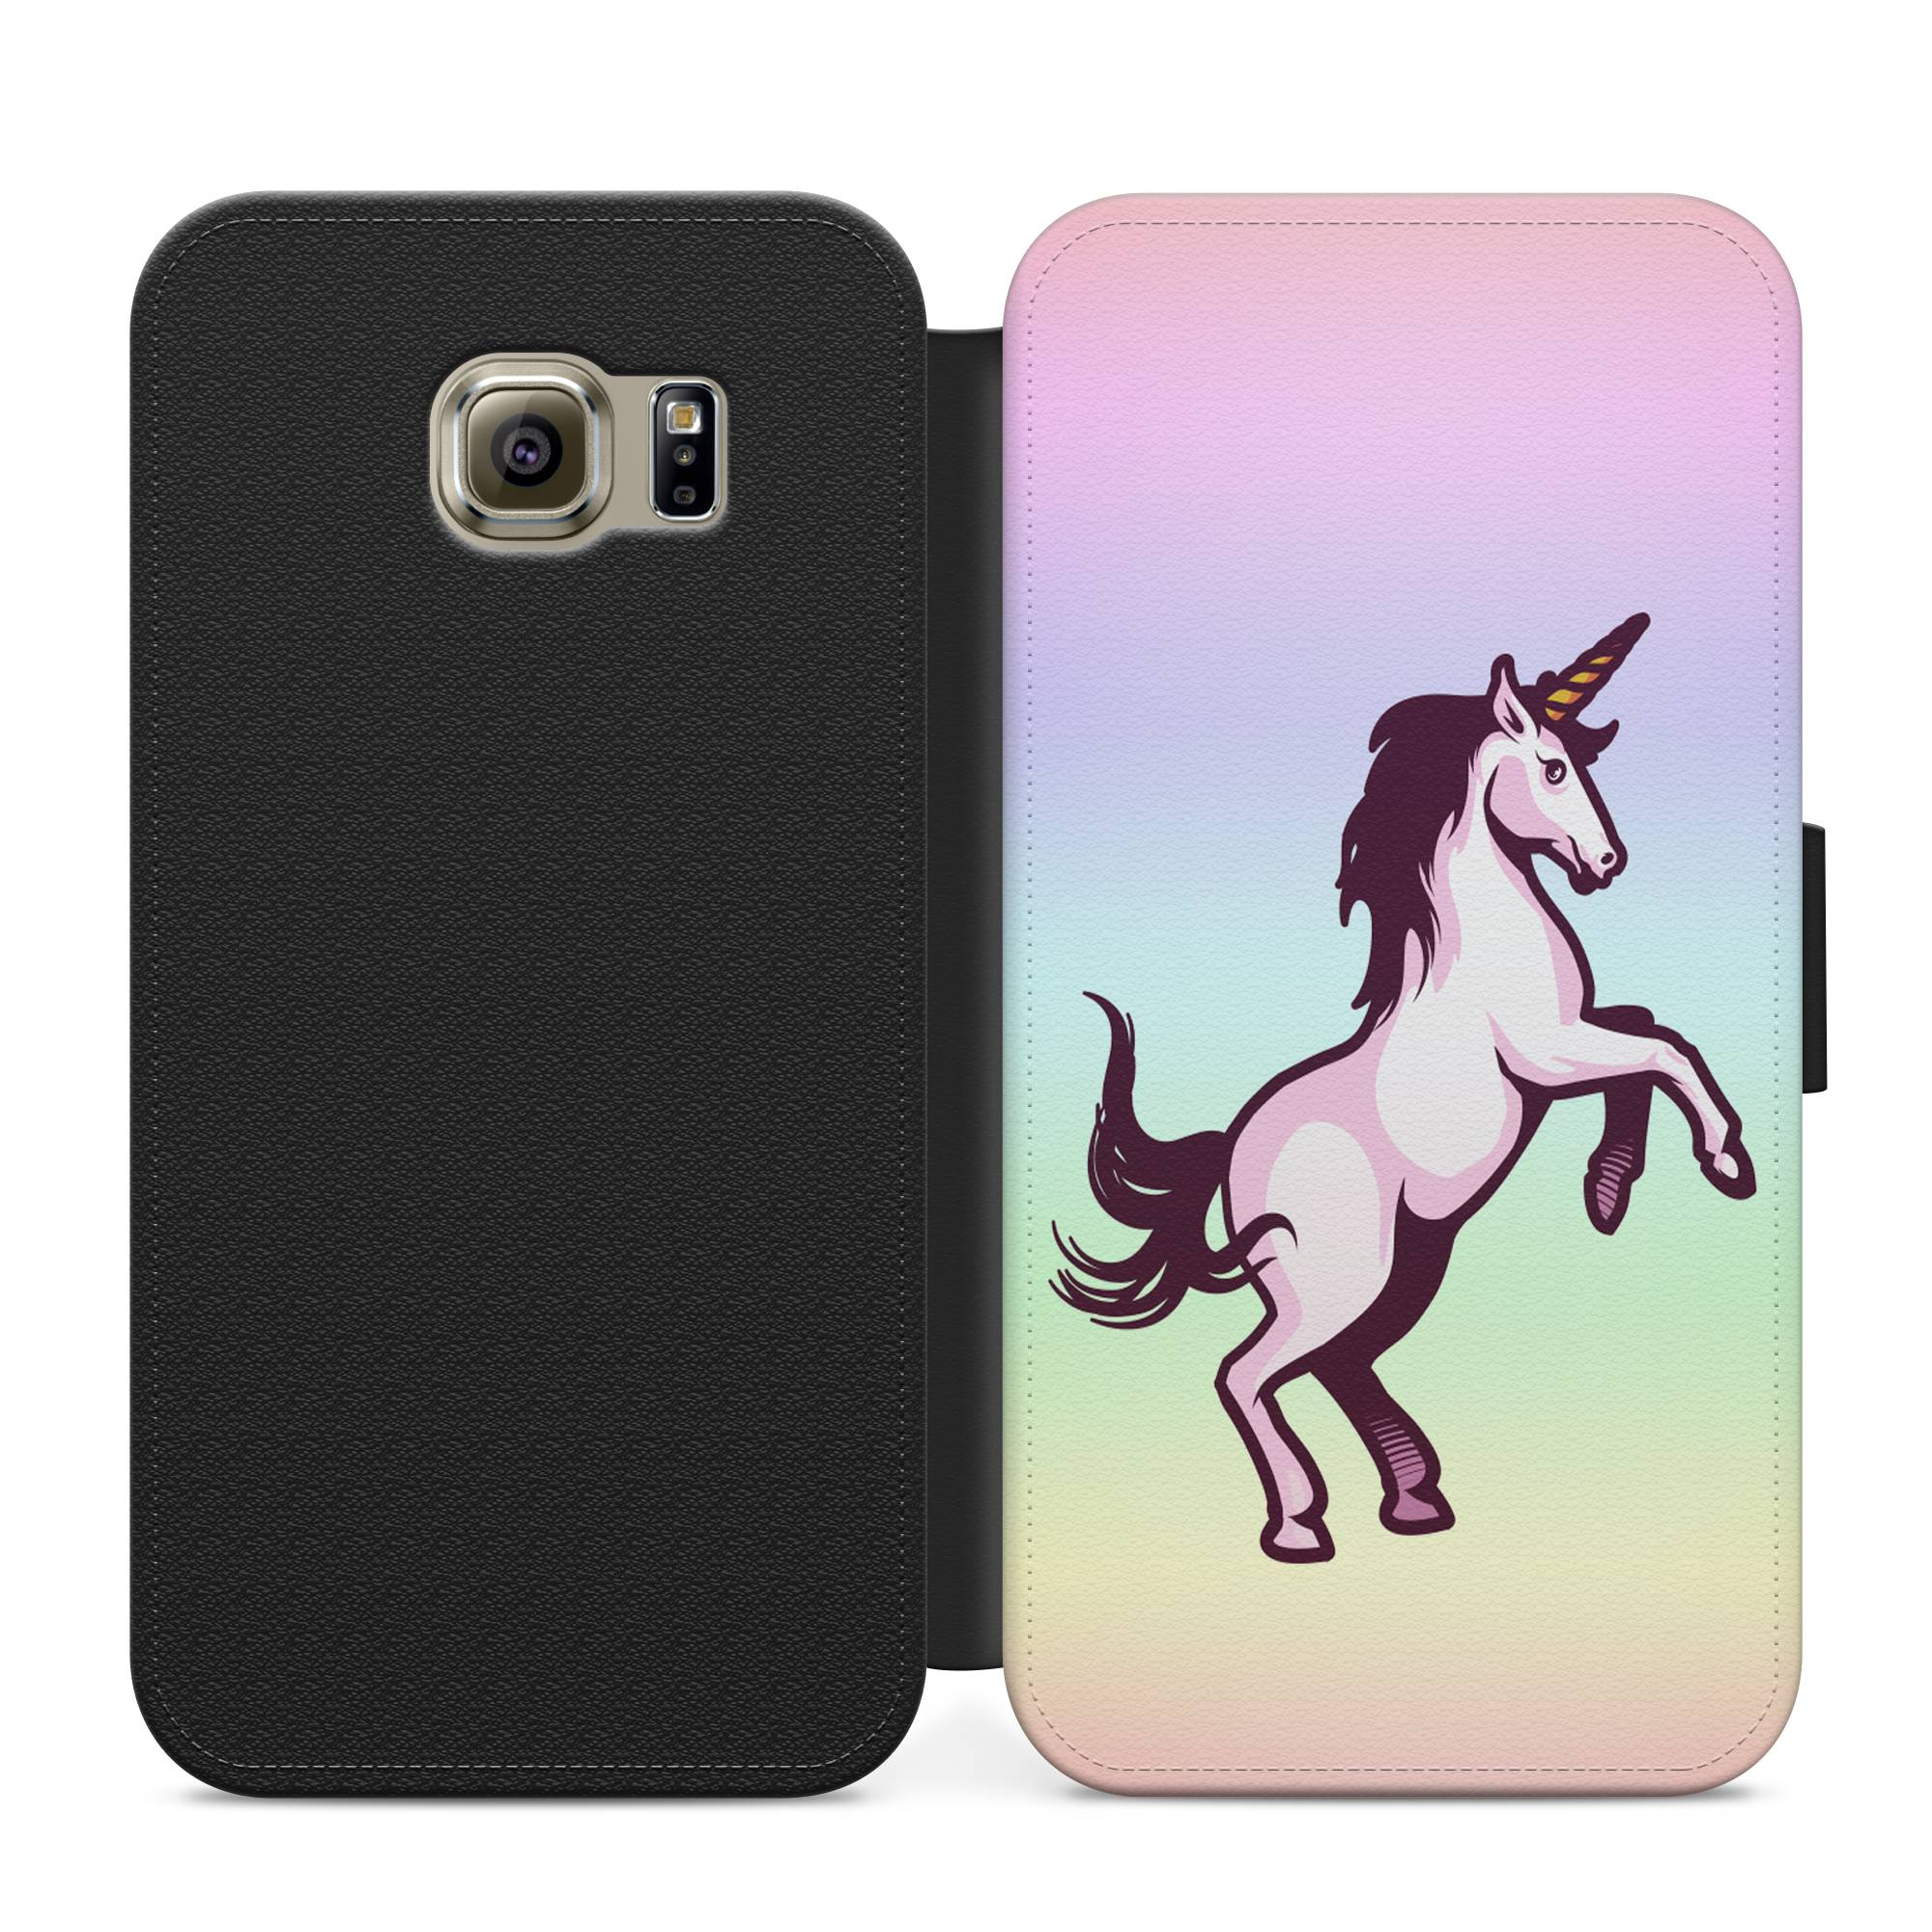 newest a1ebe 55bfc Bright colourful Unicorn flip case for iphone 4/5/6/7/8 Samsung  S3/S4/S5/S6/S7/S8